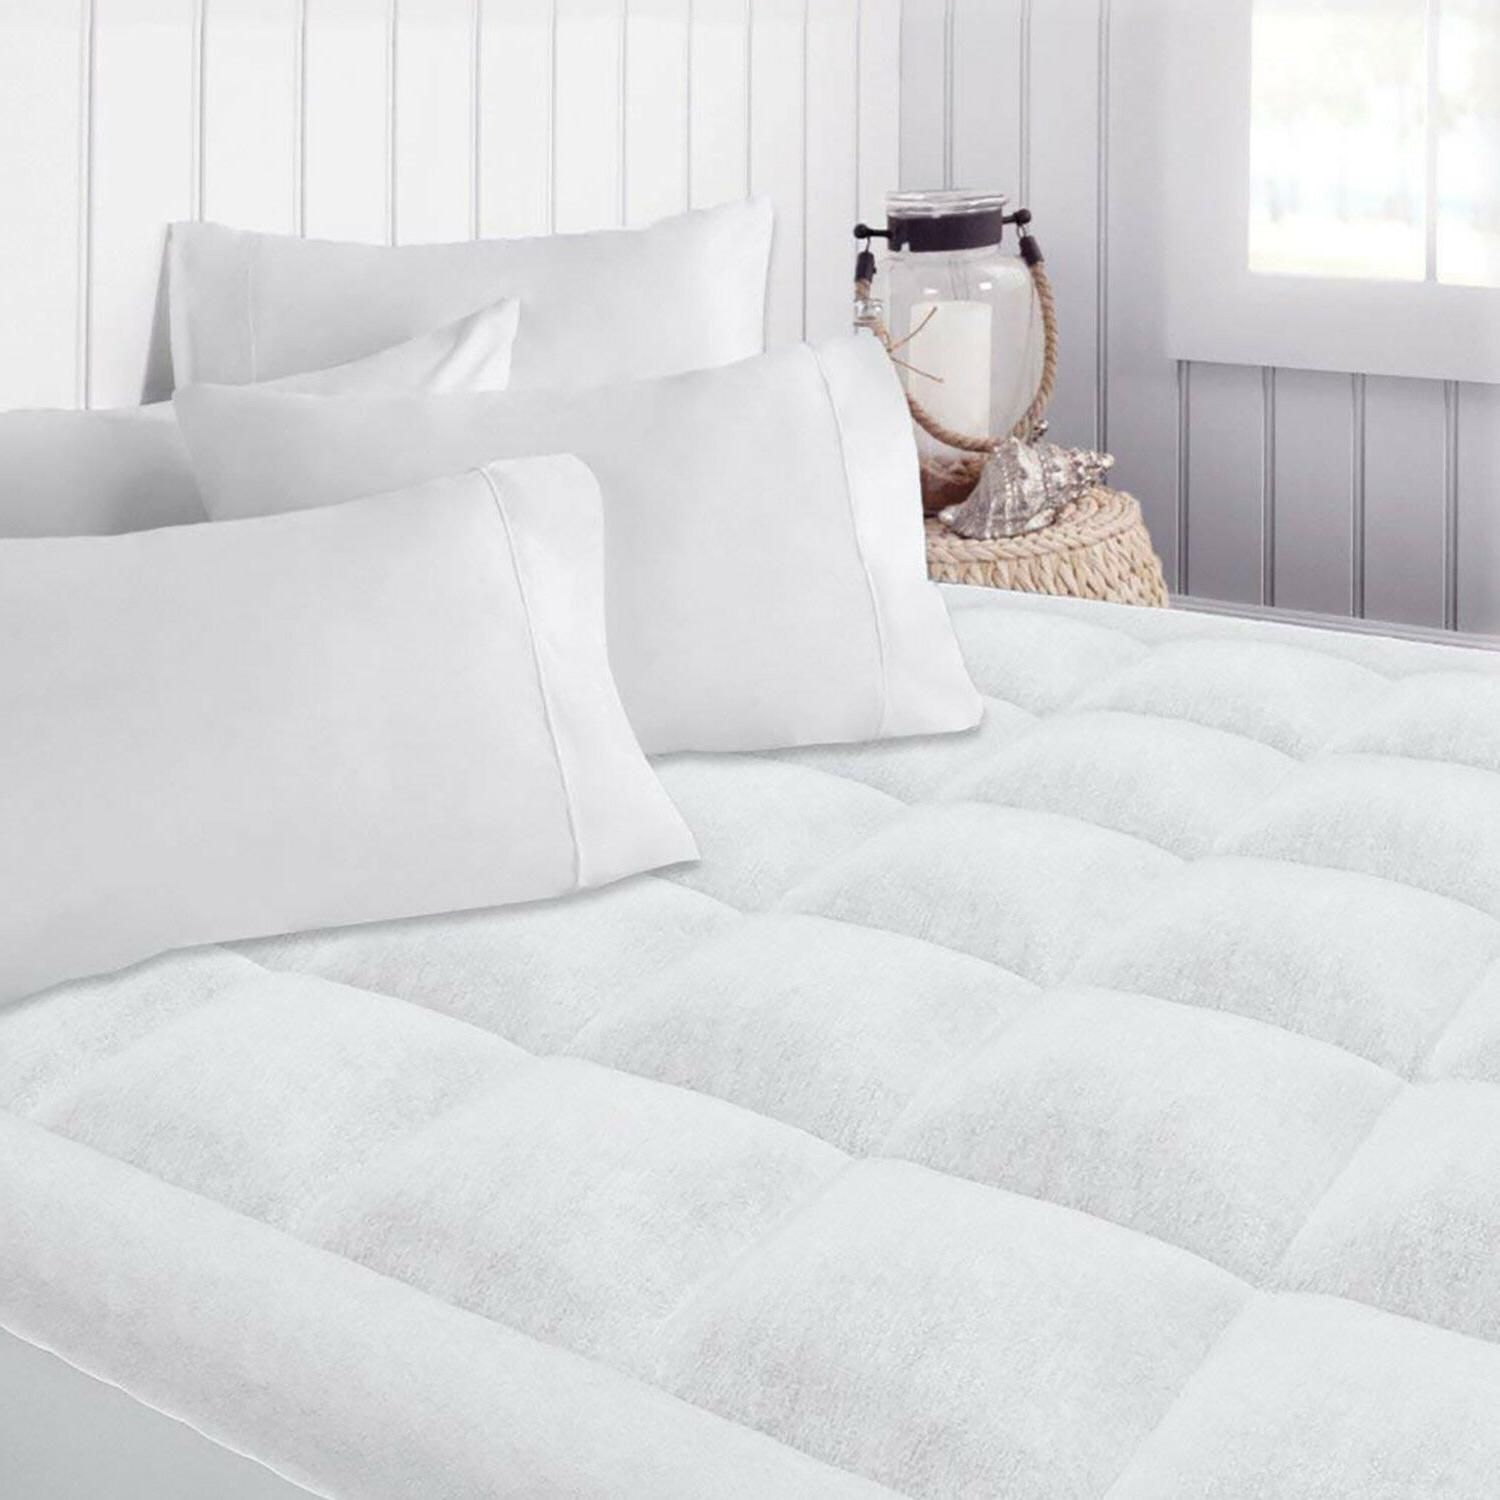 Luxury Mattress Pad Overfilled Topper Polyester Microplush C